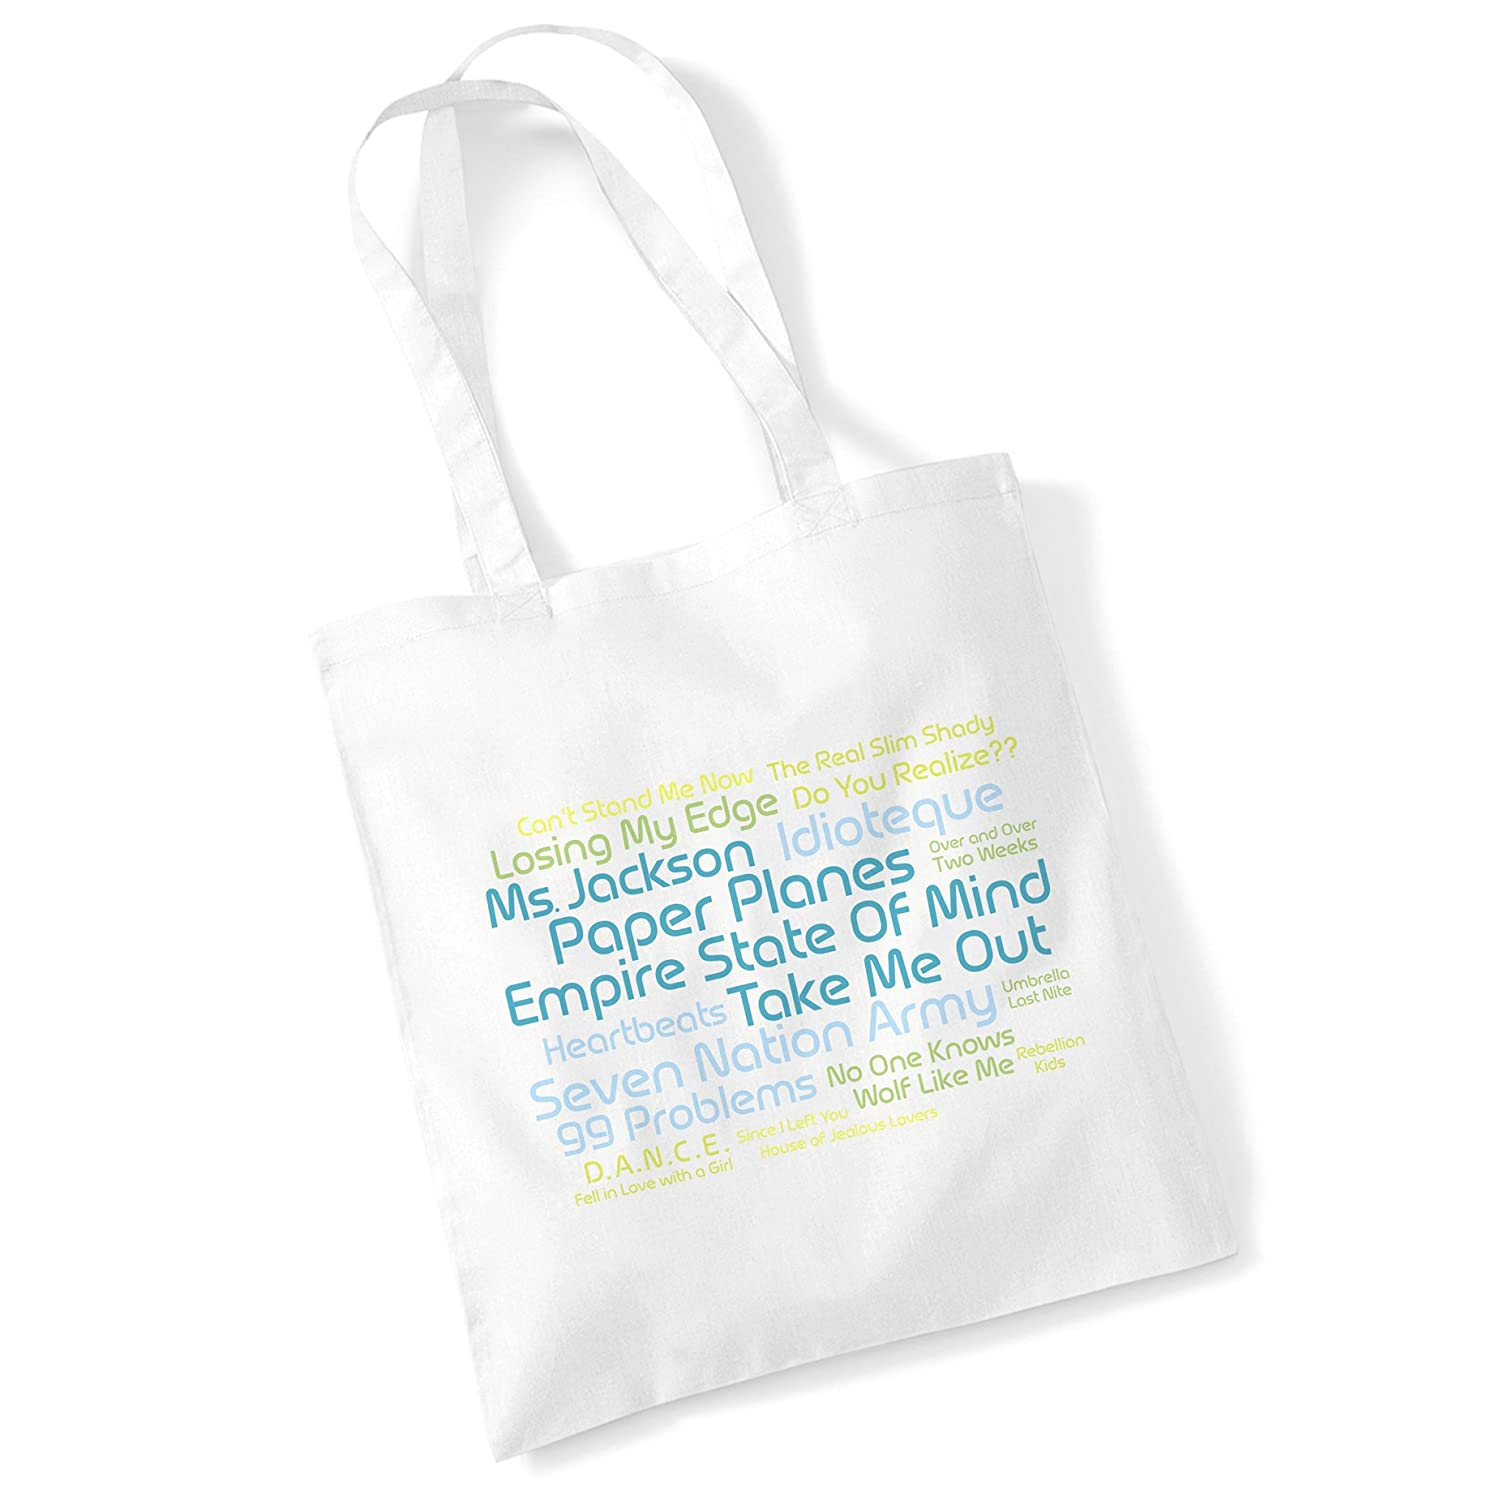 LISSOME Art Studio Tote Bag 2000s Vol 2 - Collectable 00s